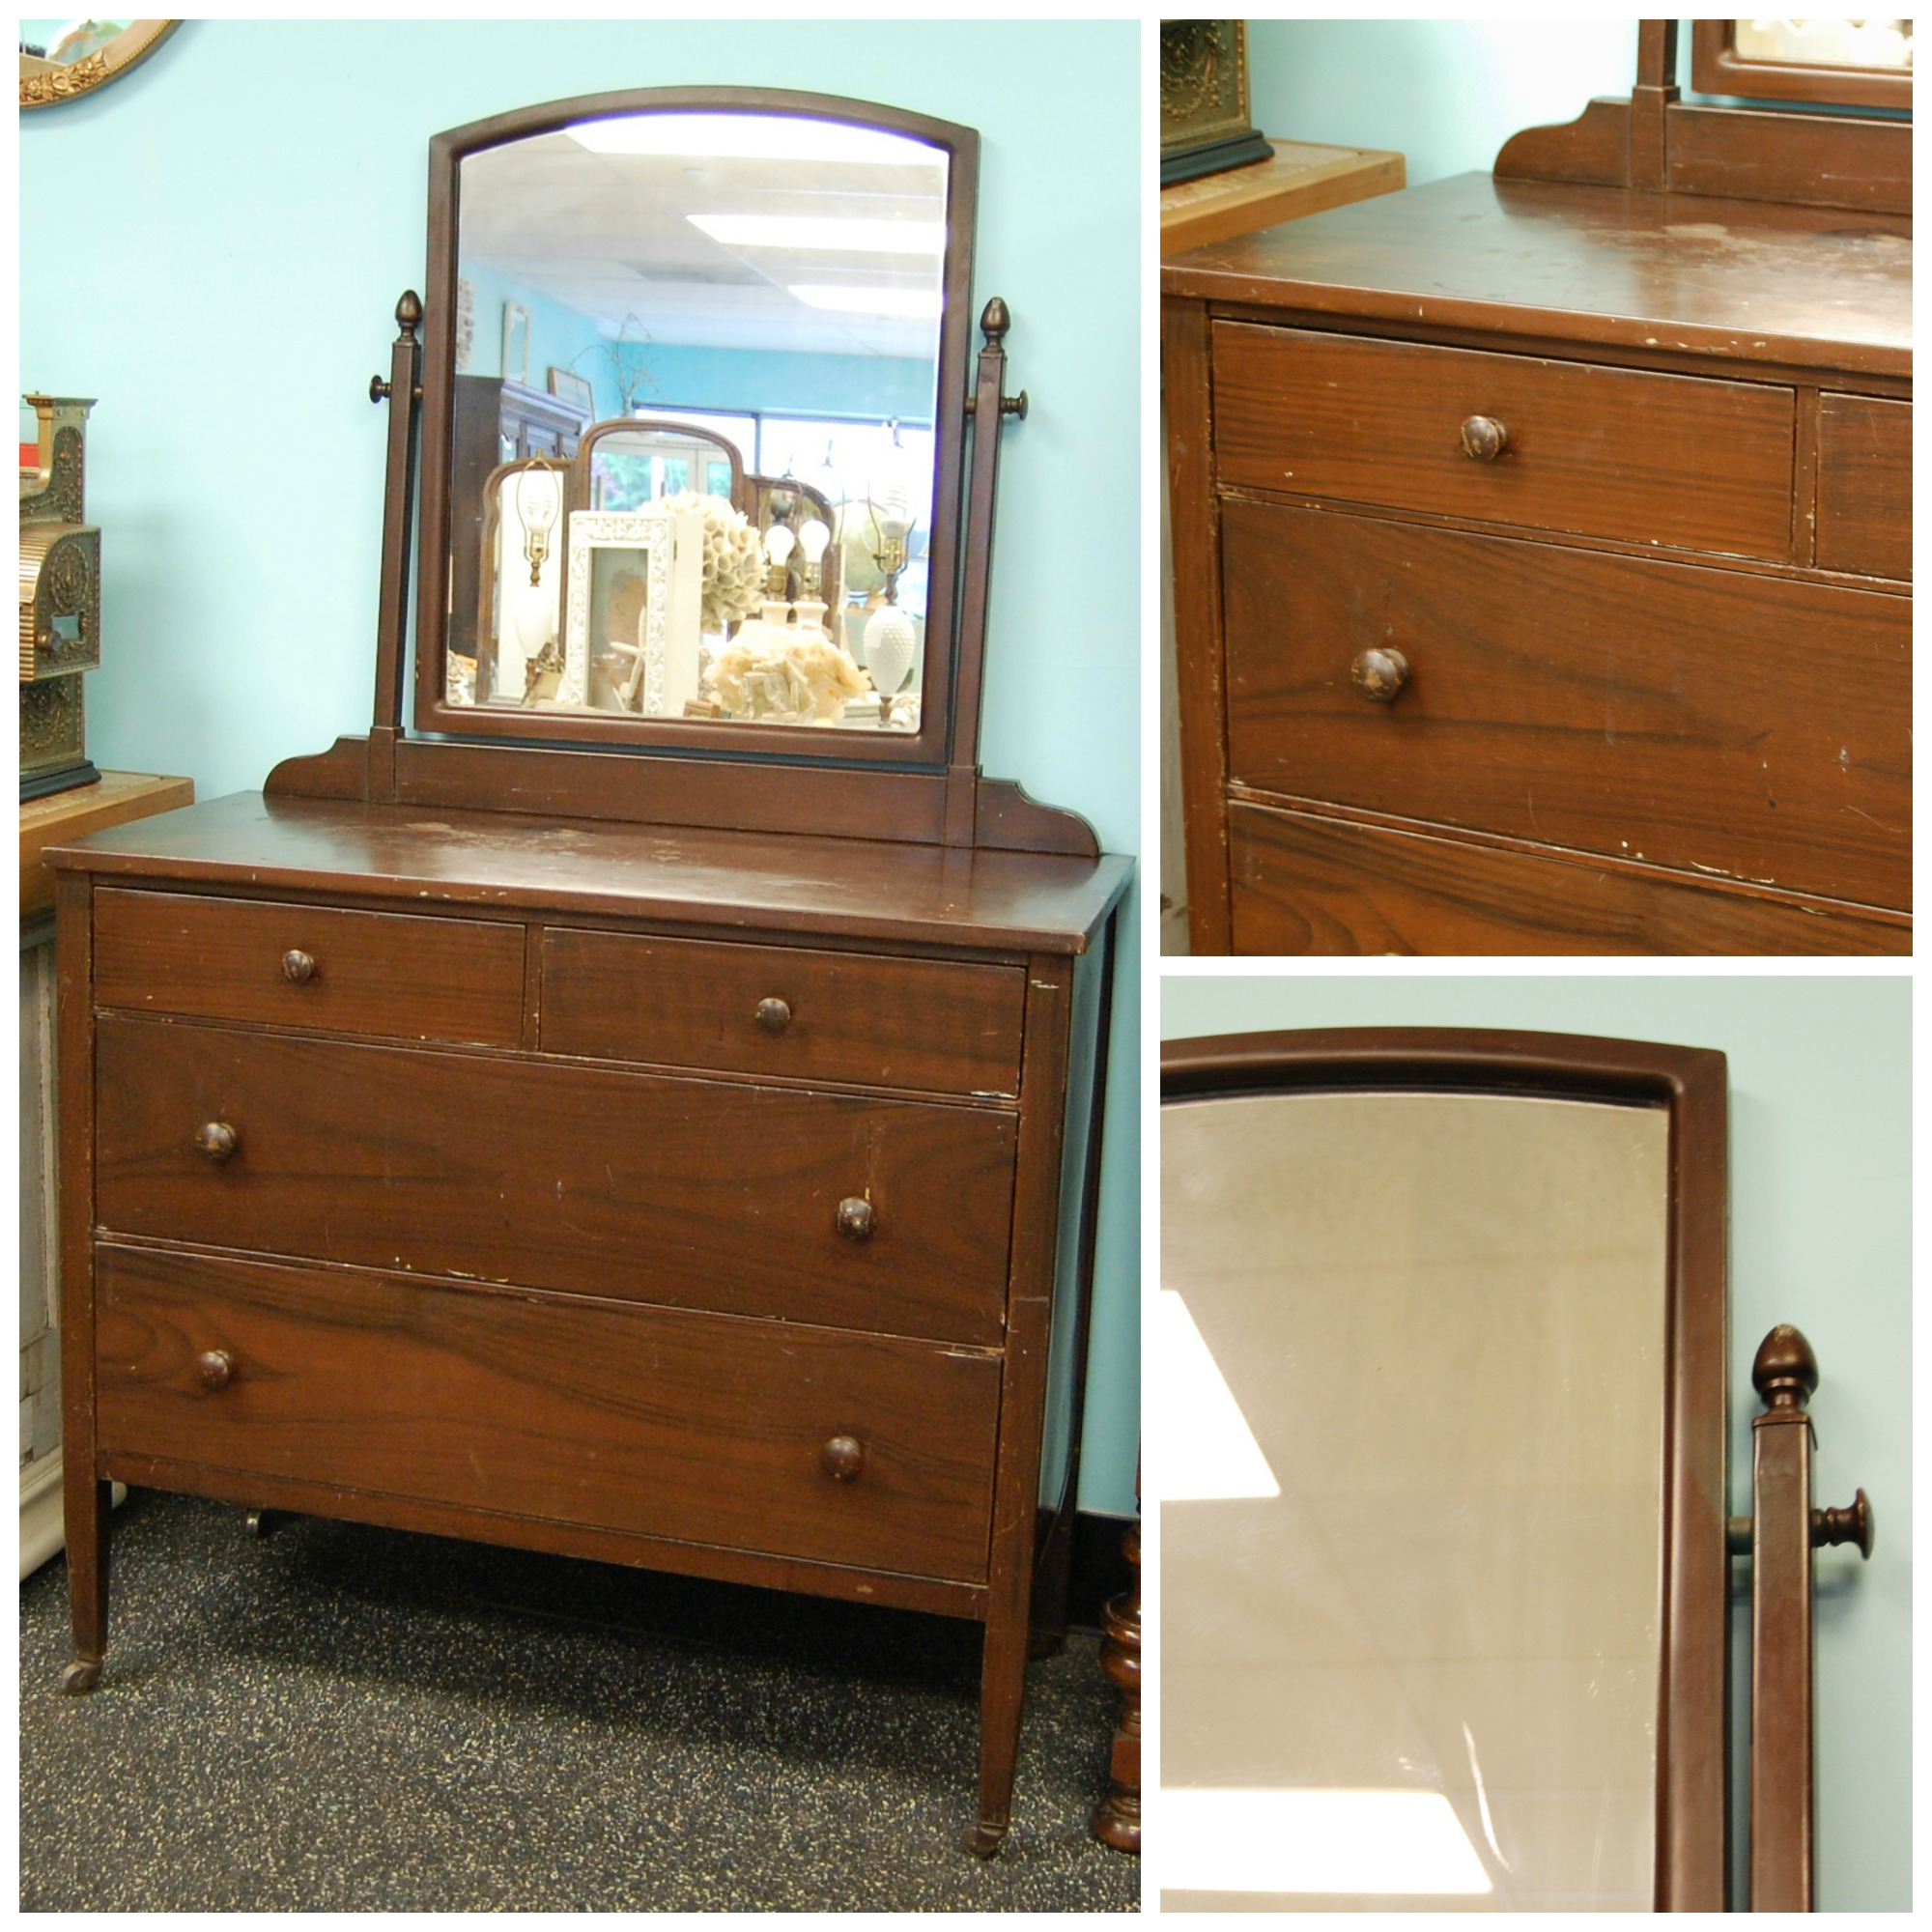 1930s Metal Simmons Dresser With Mirror